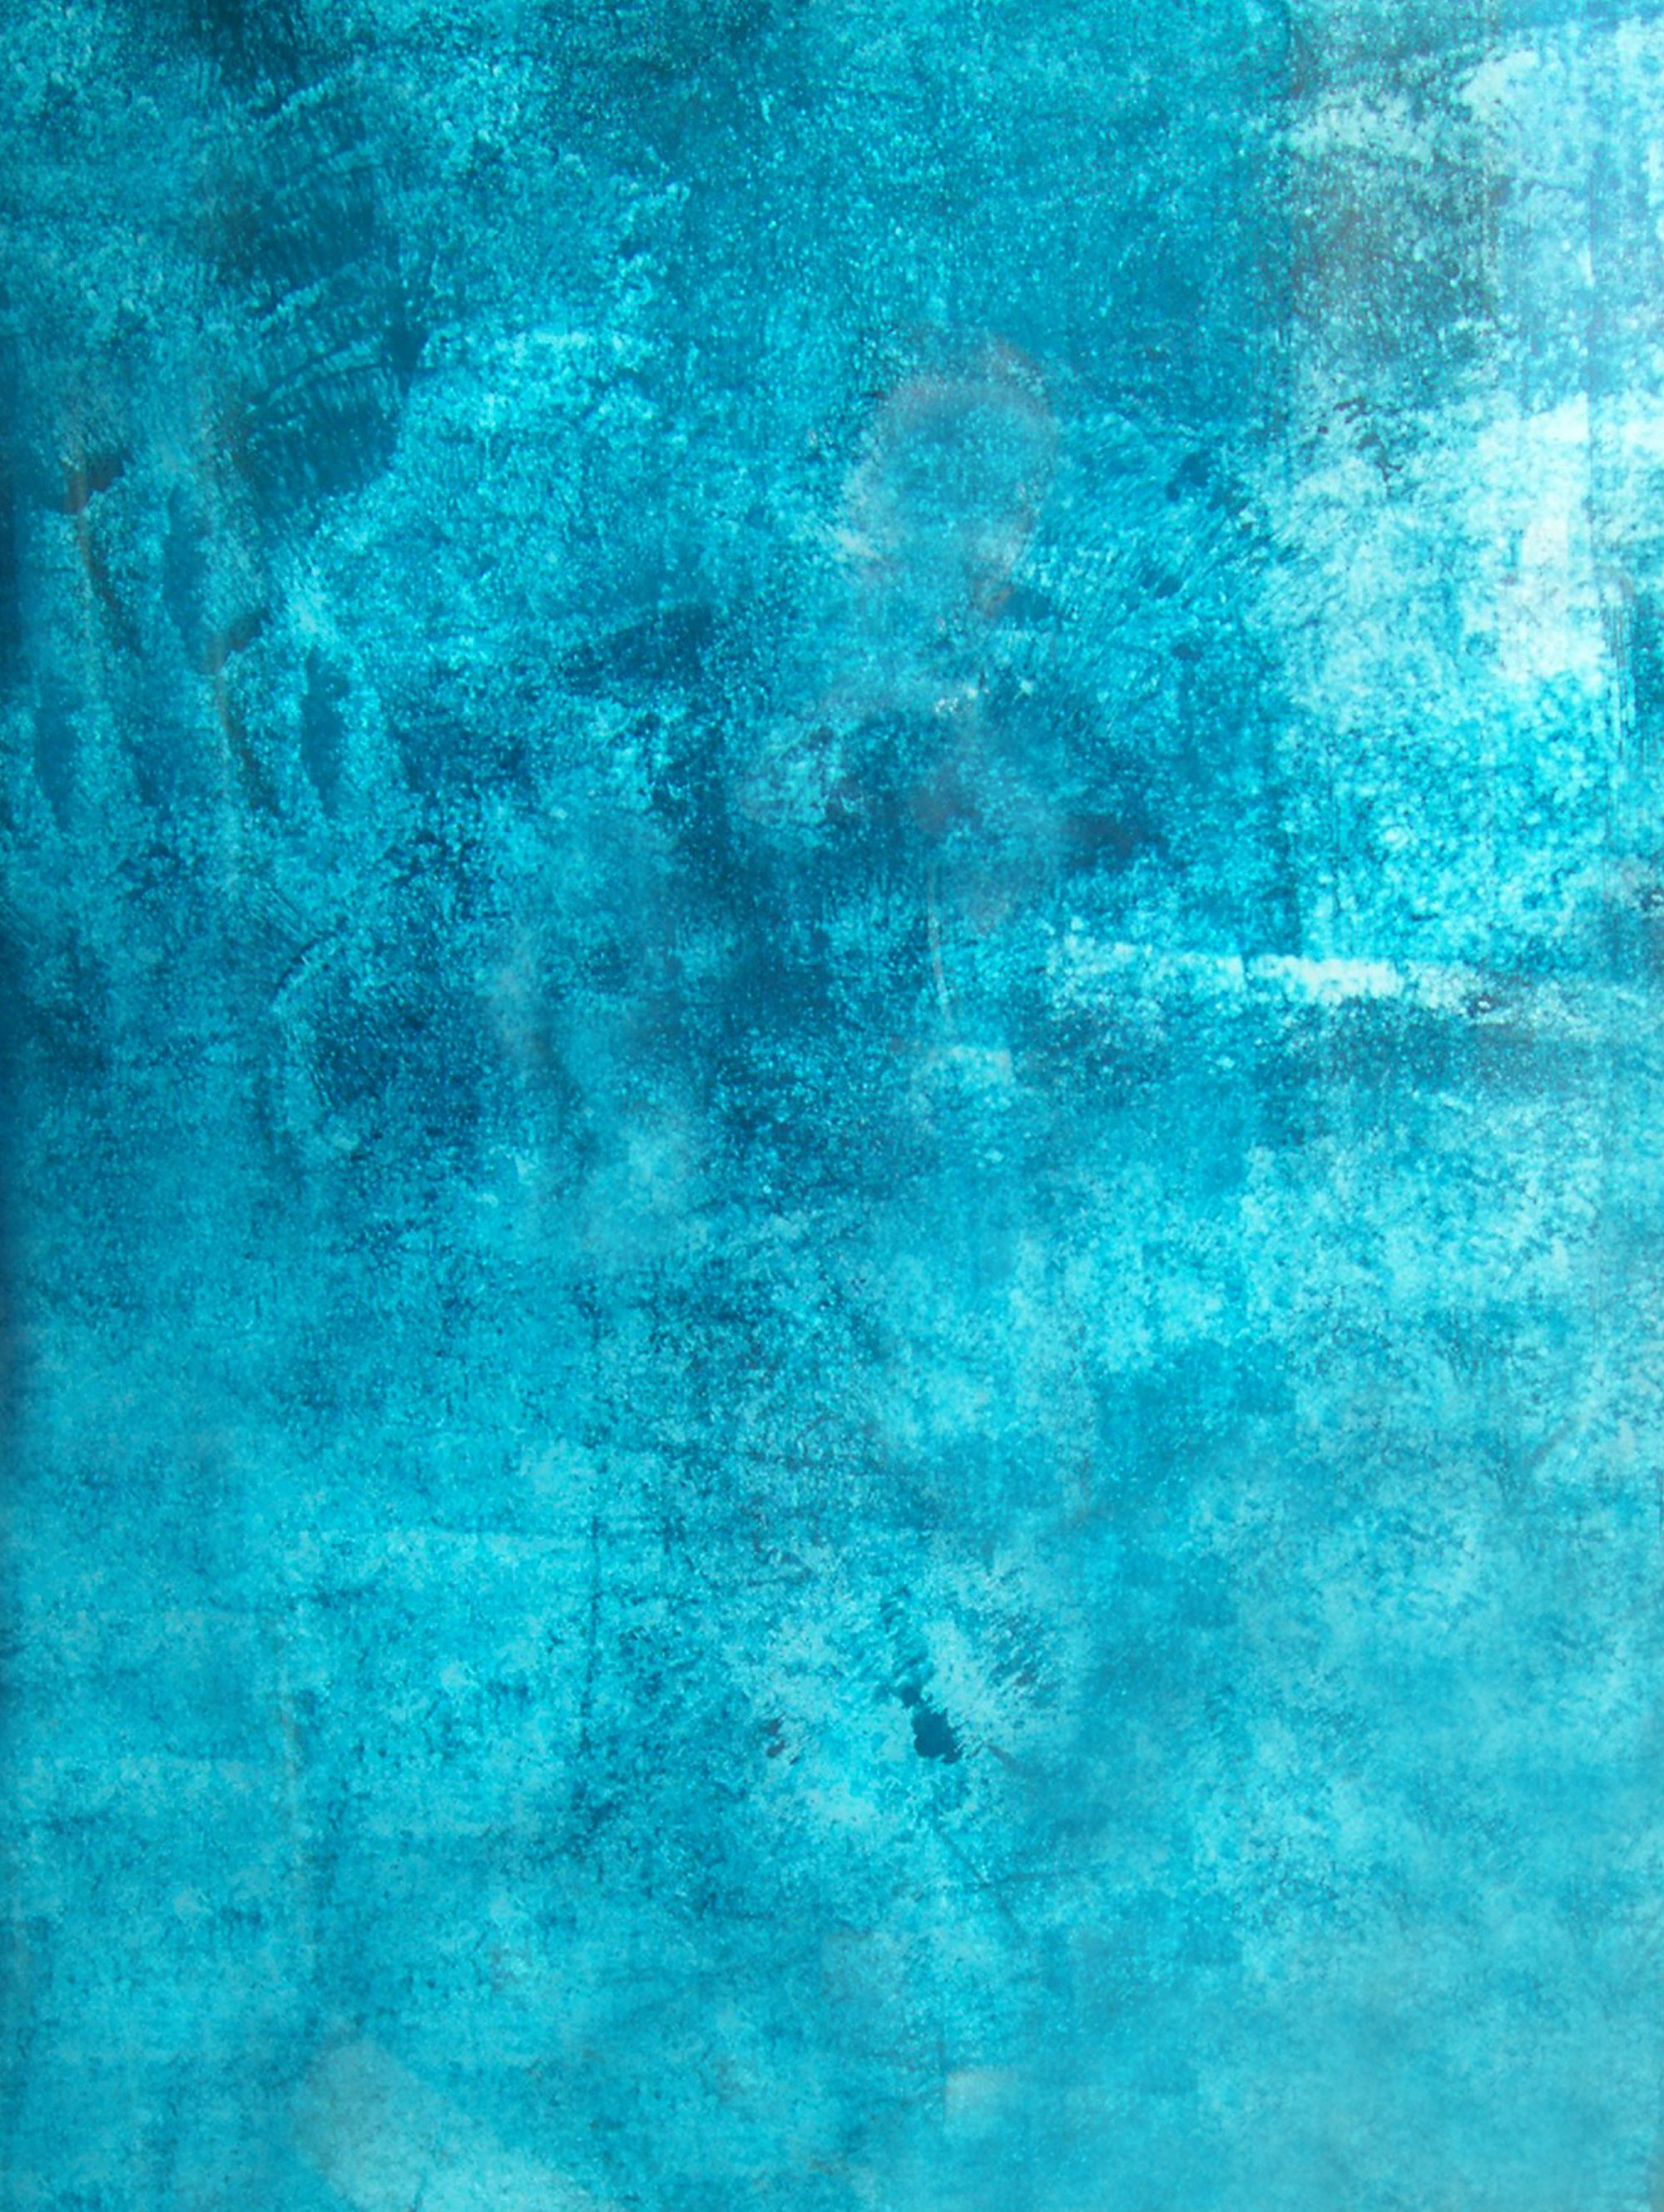 Turquoise texturas pinterest texture walls for Turquoise colour images